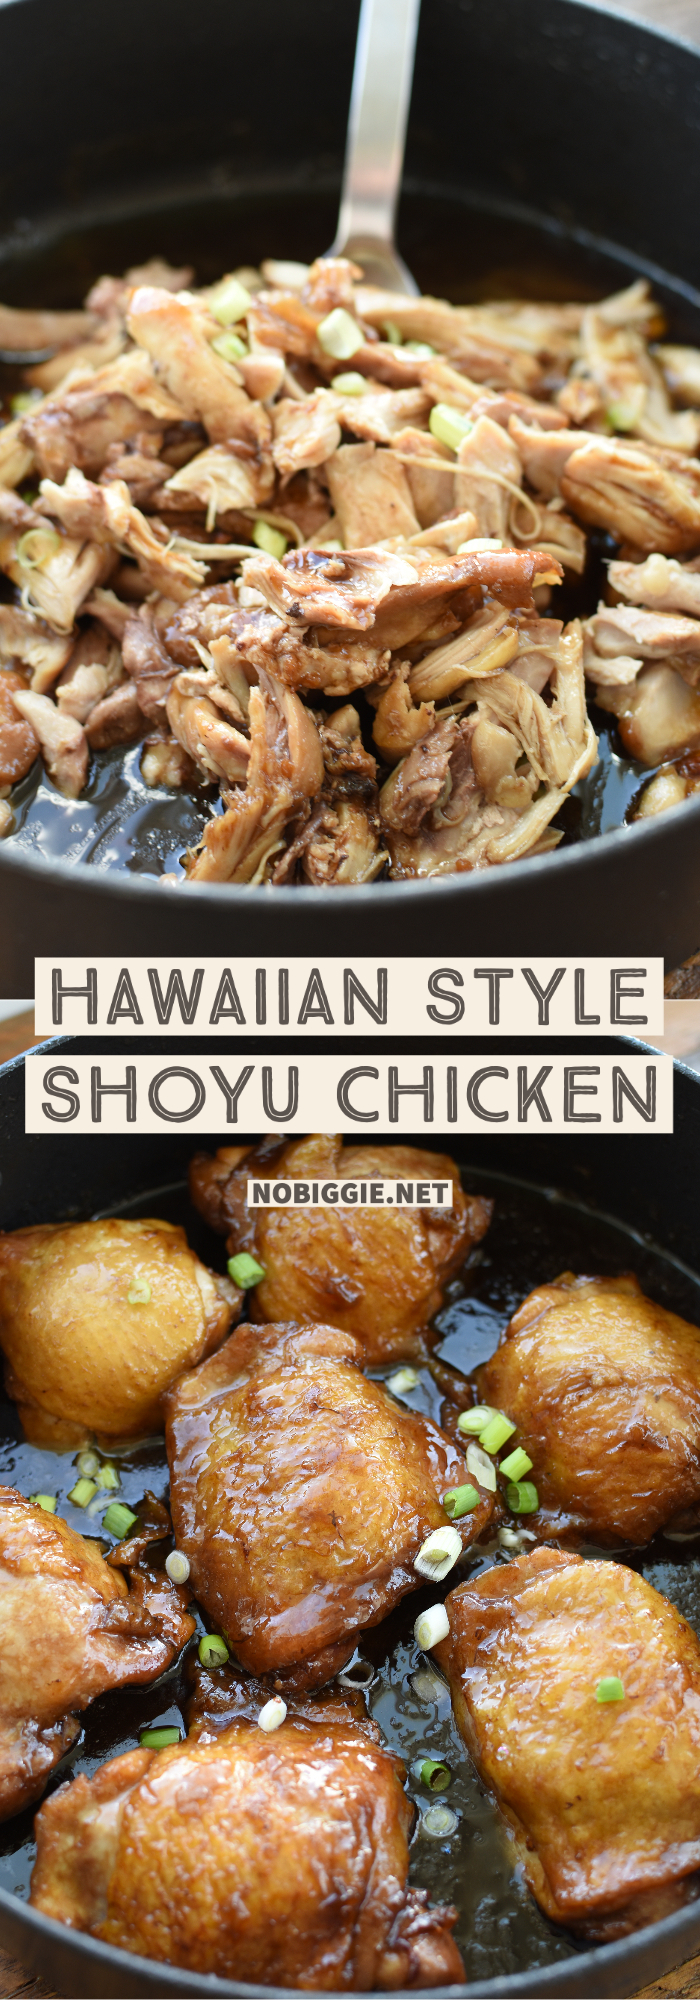 shoyu chicken | NoBiggie.net